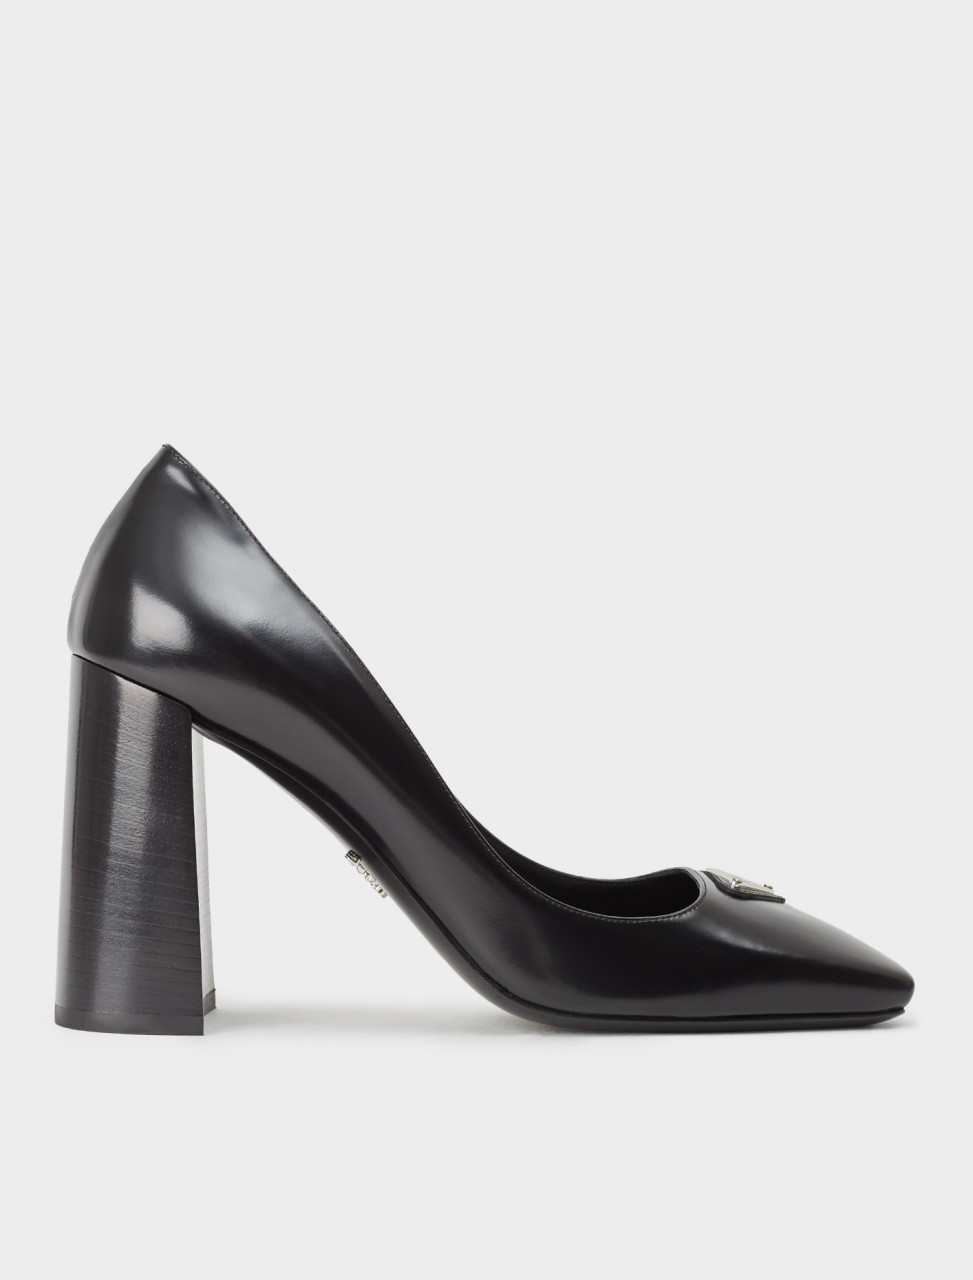 242-1I308M-055-F0002-F-B095 PRADA SQUARE TOE BLOCK HEEL PUMP IN BLACK